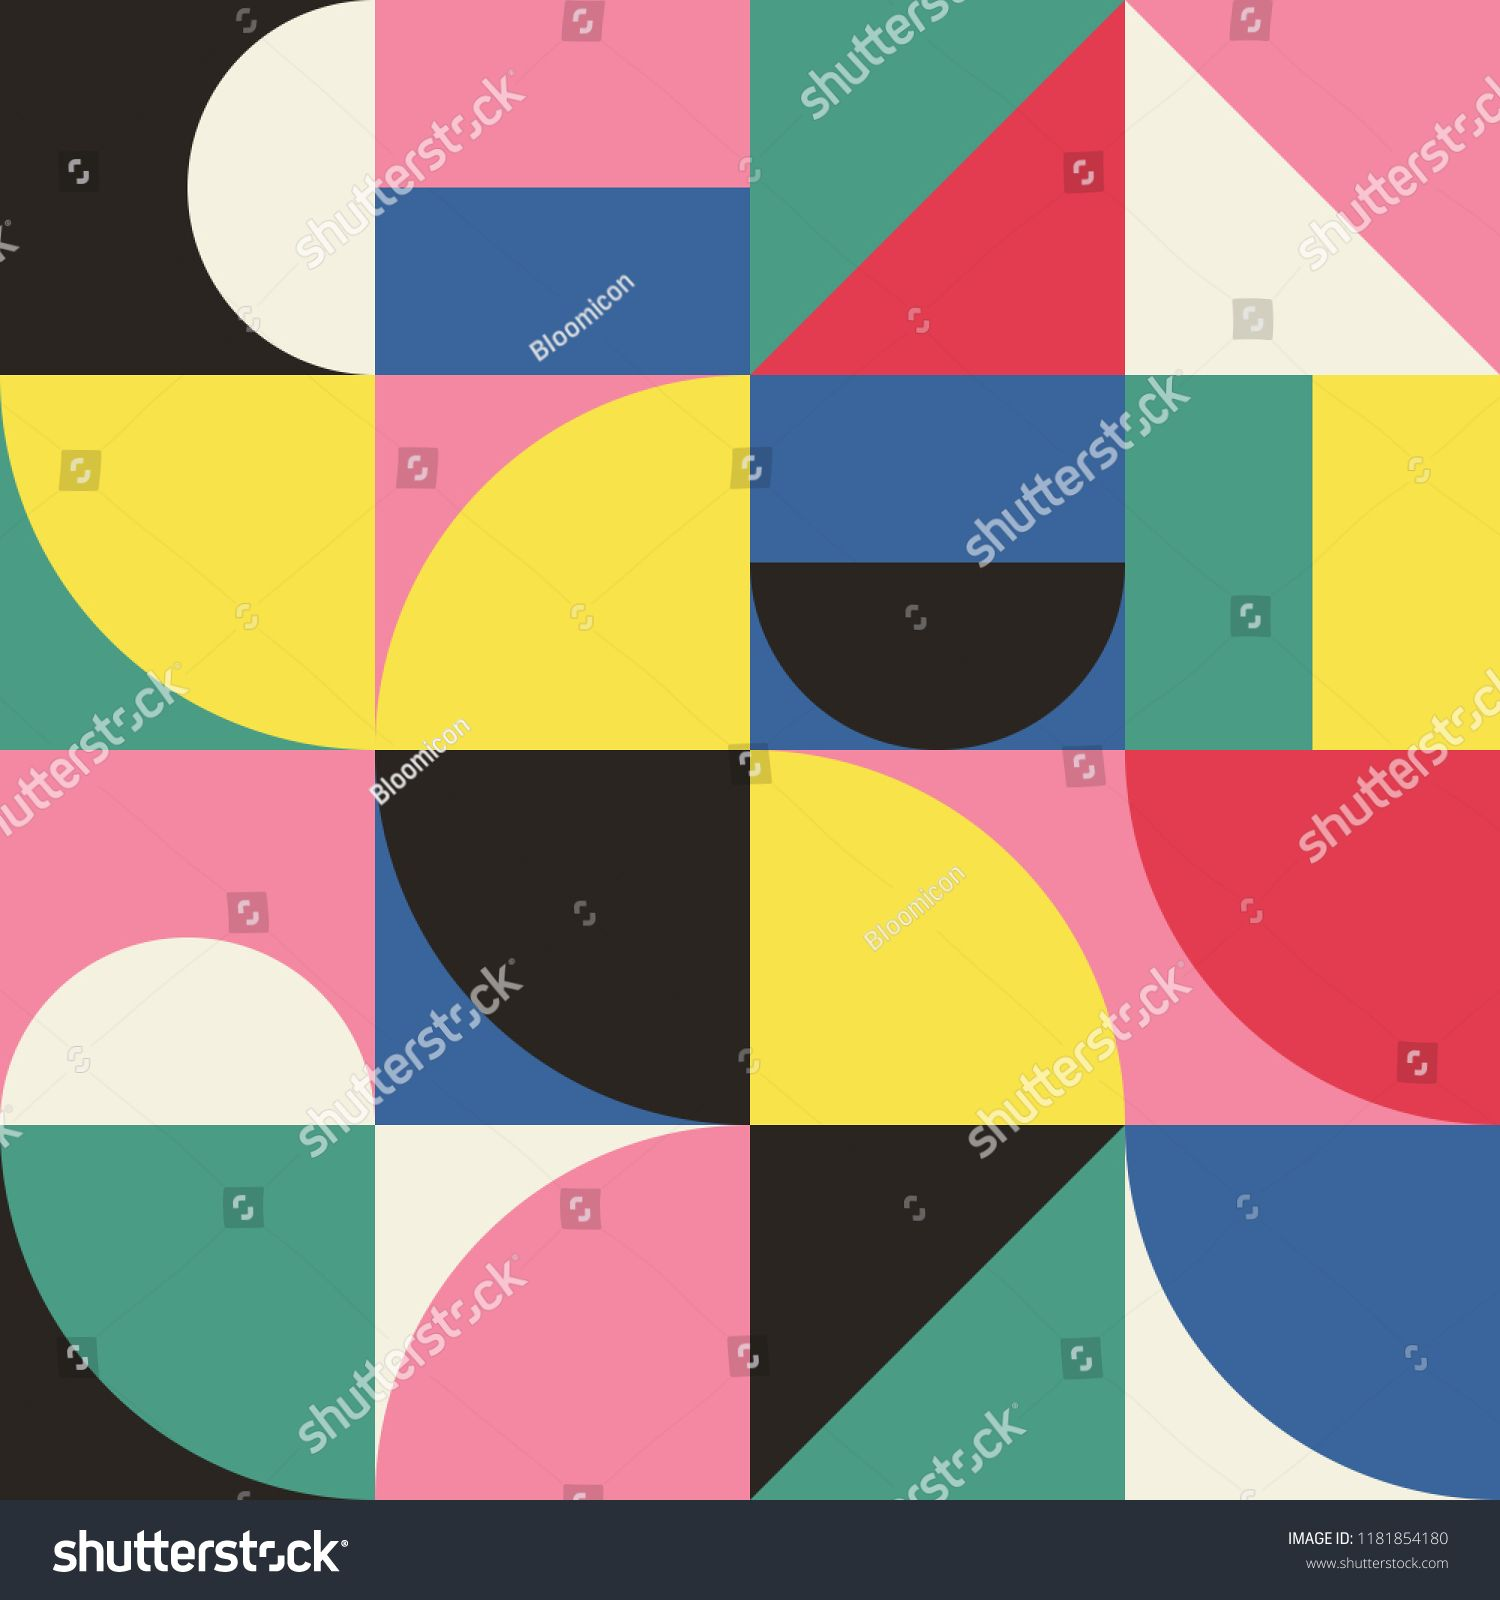 Geometry minimalistic artwork poster with simple shapes and figures abstract vector pattern design in scandinavian also halftone lined background effect patternnes rh pinterest